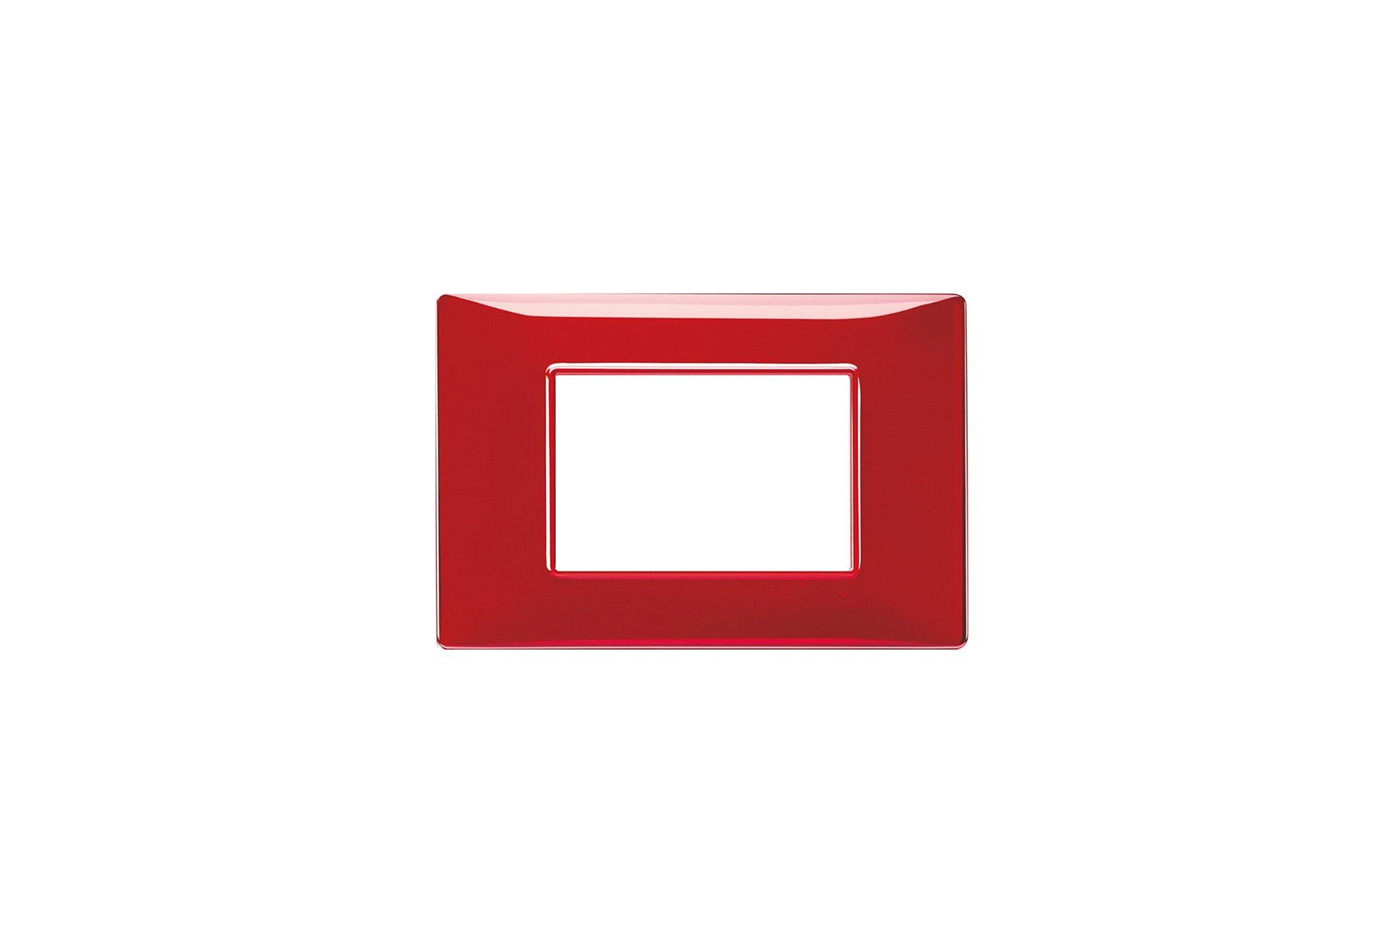 Placchetta placca rossa compatibile matix 3 posti copri interruttore c8803 red